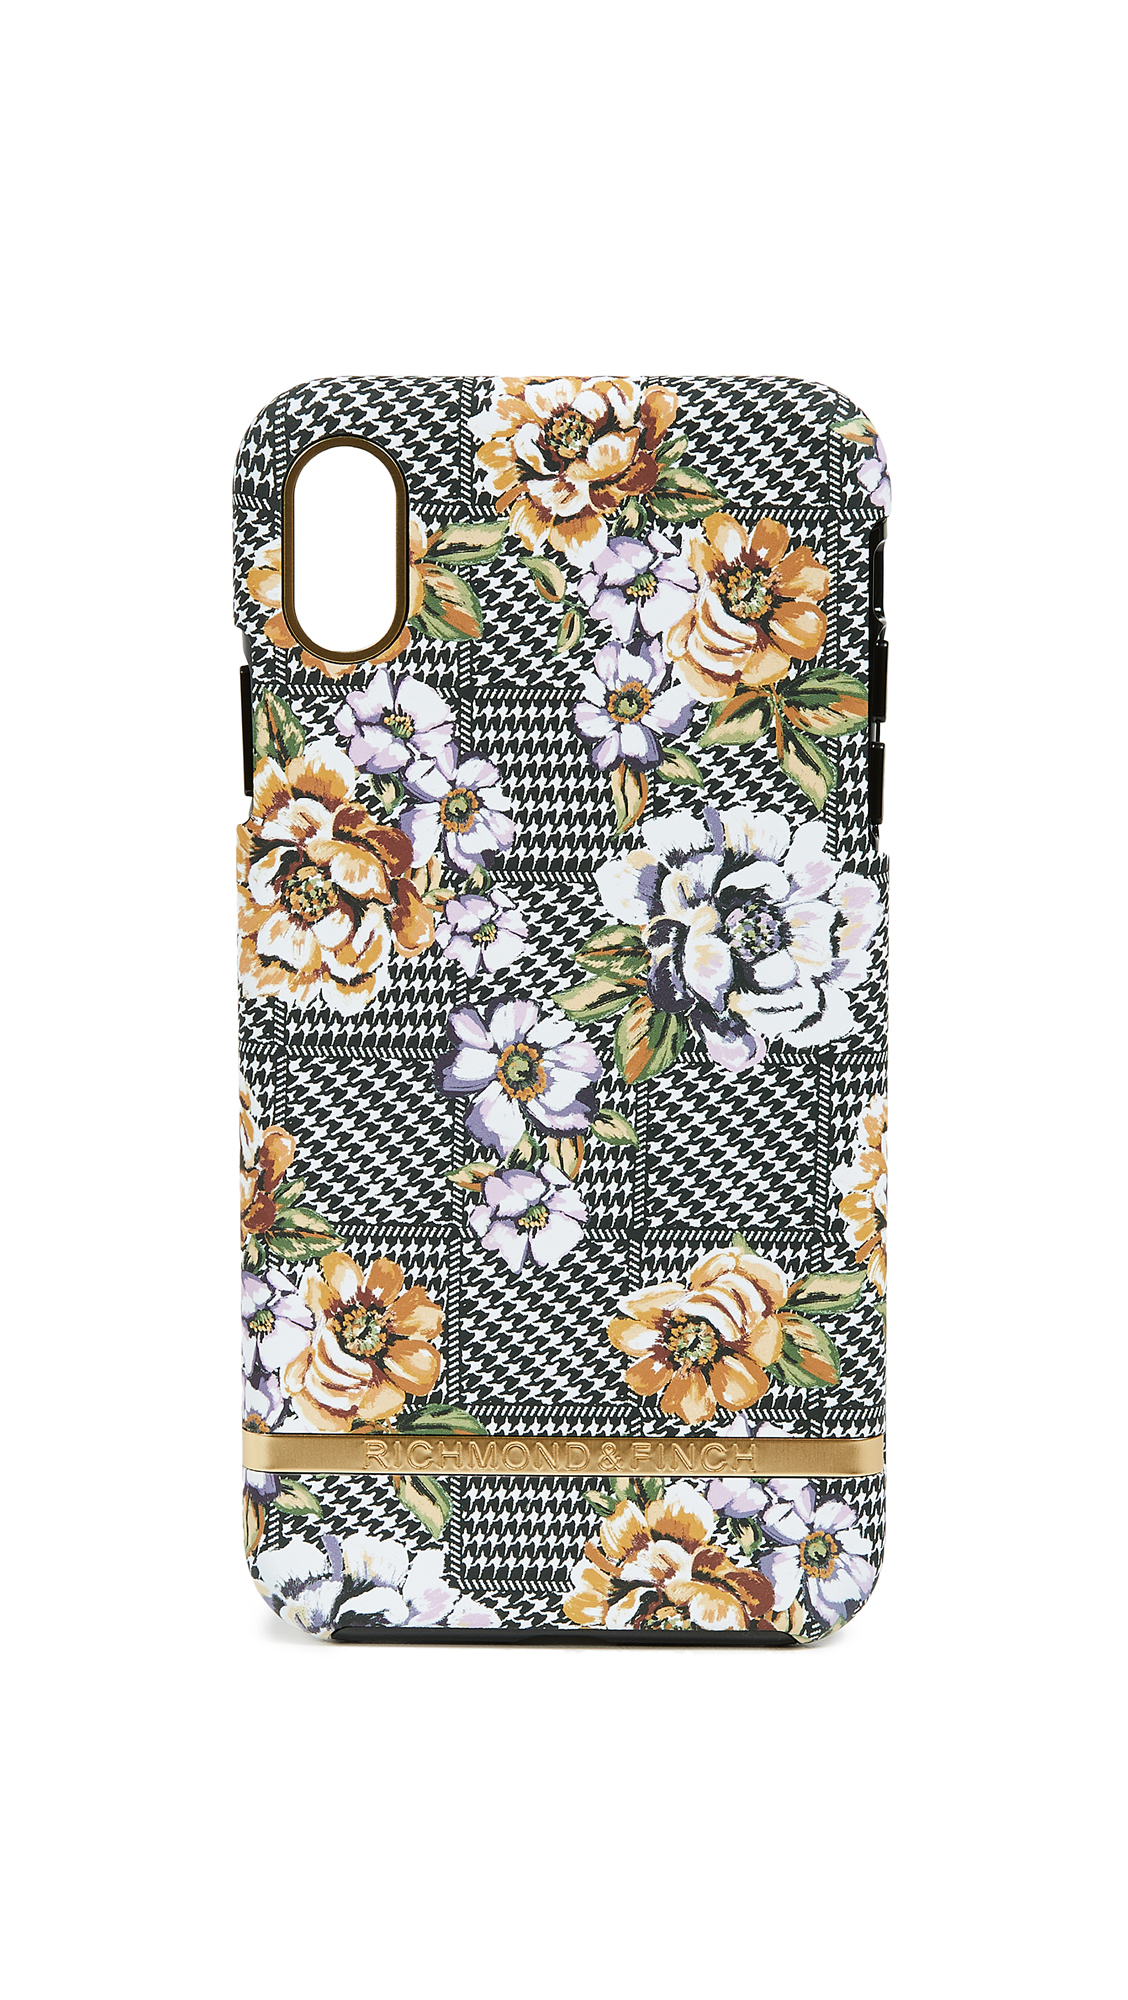 RICHMOND & FINCH Floral Tweed Iphone Xs Max Case